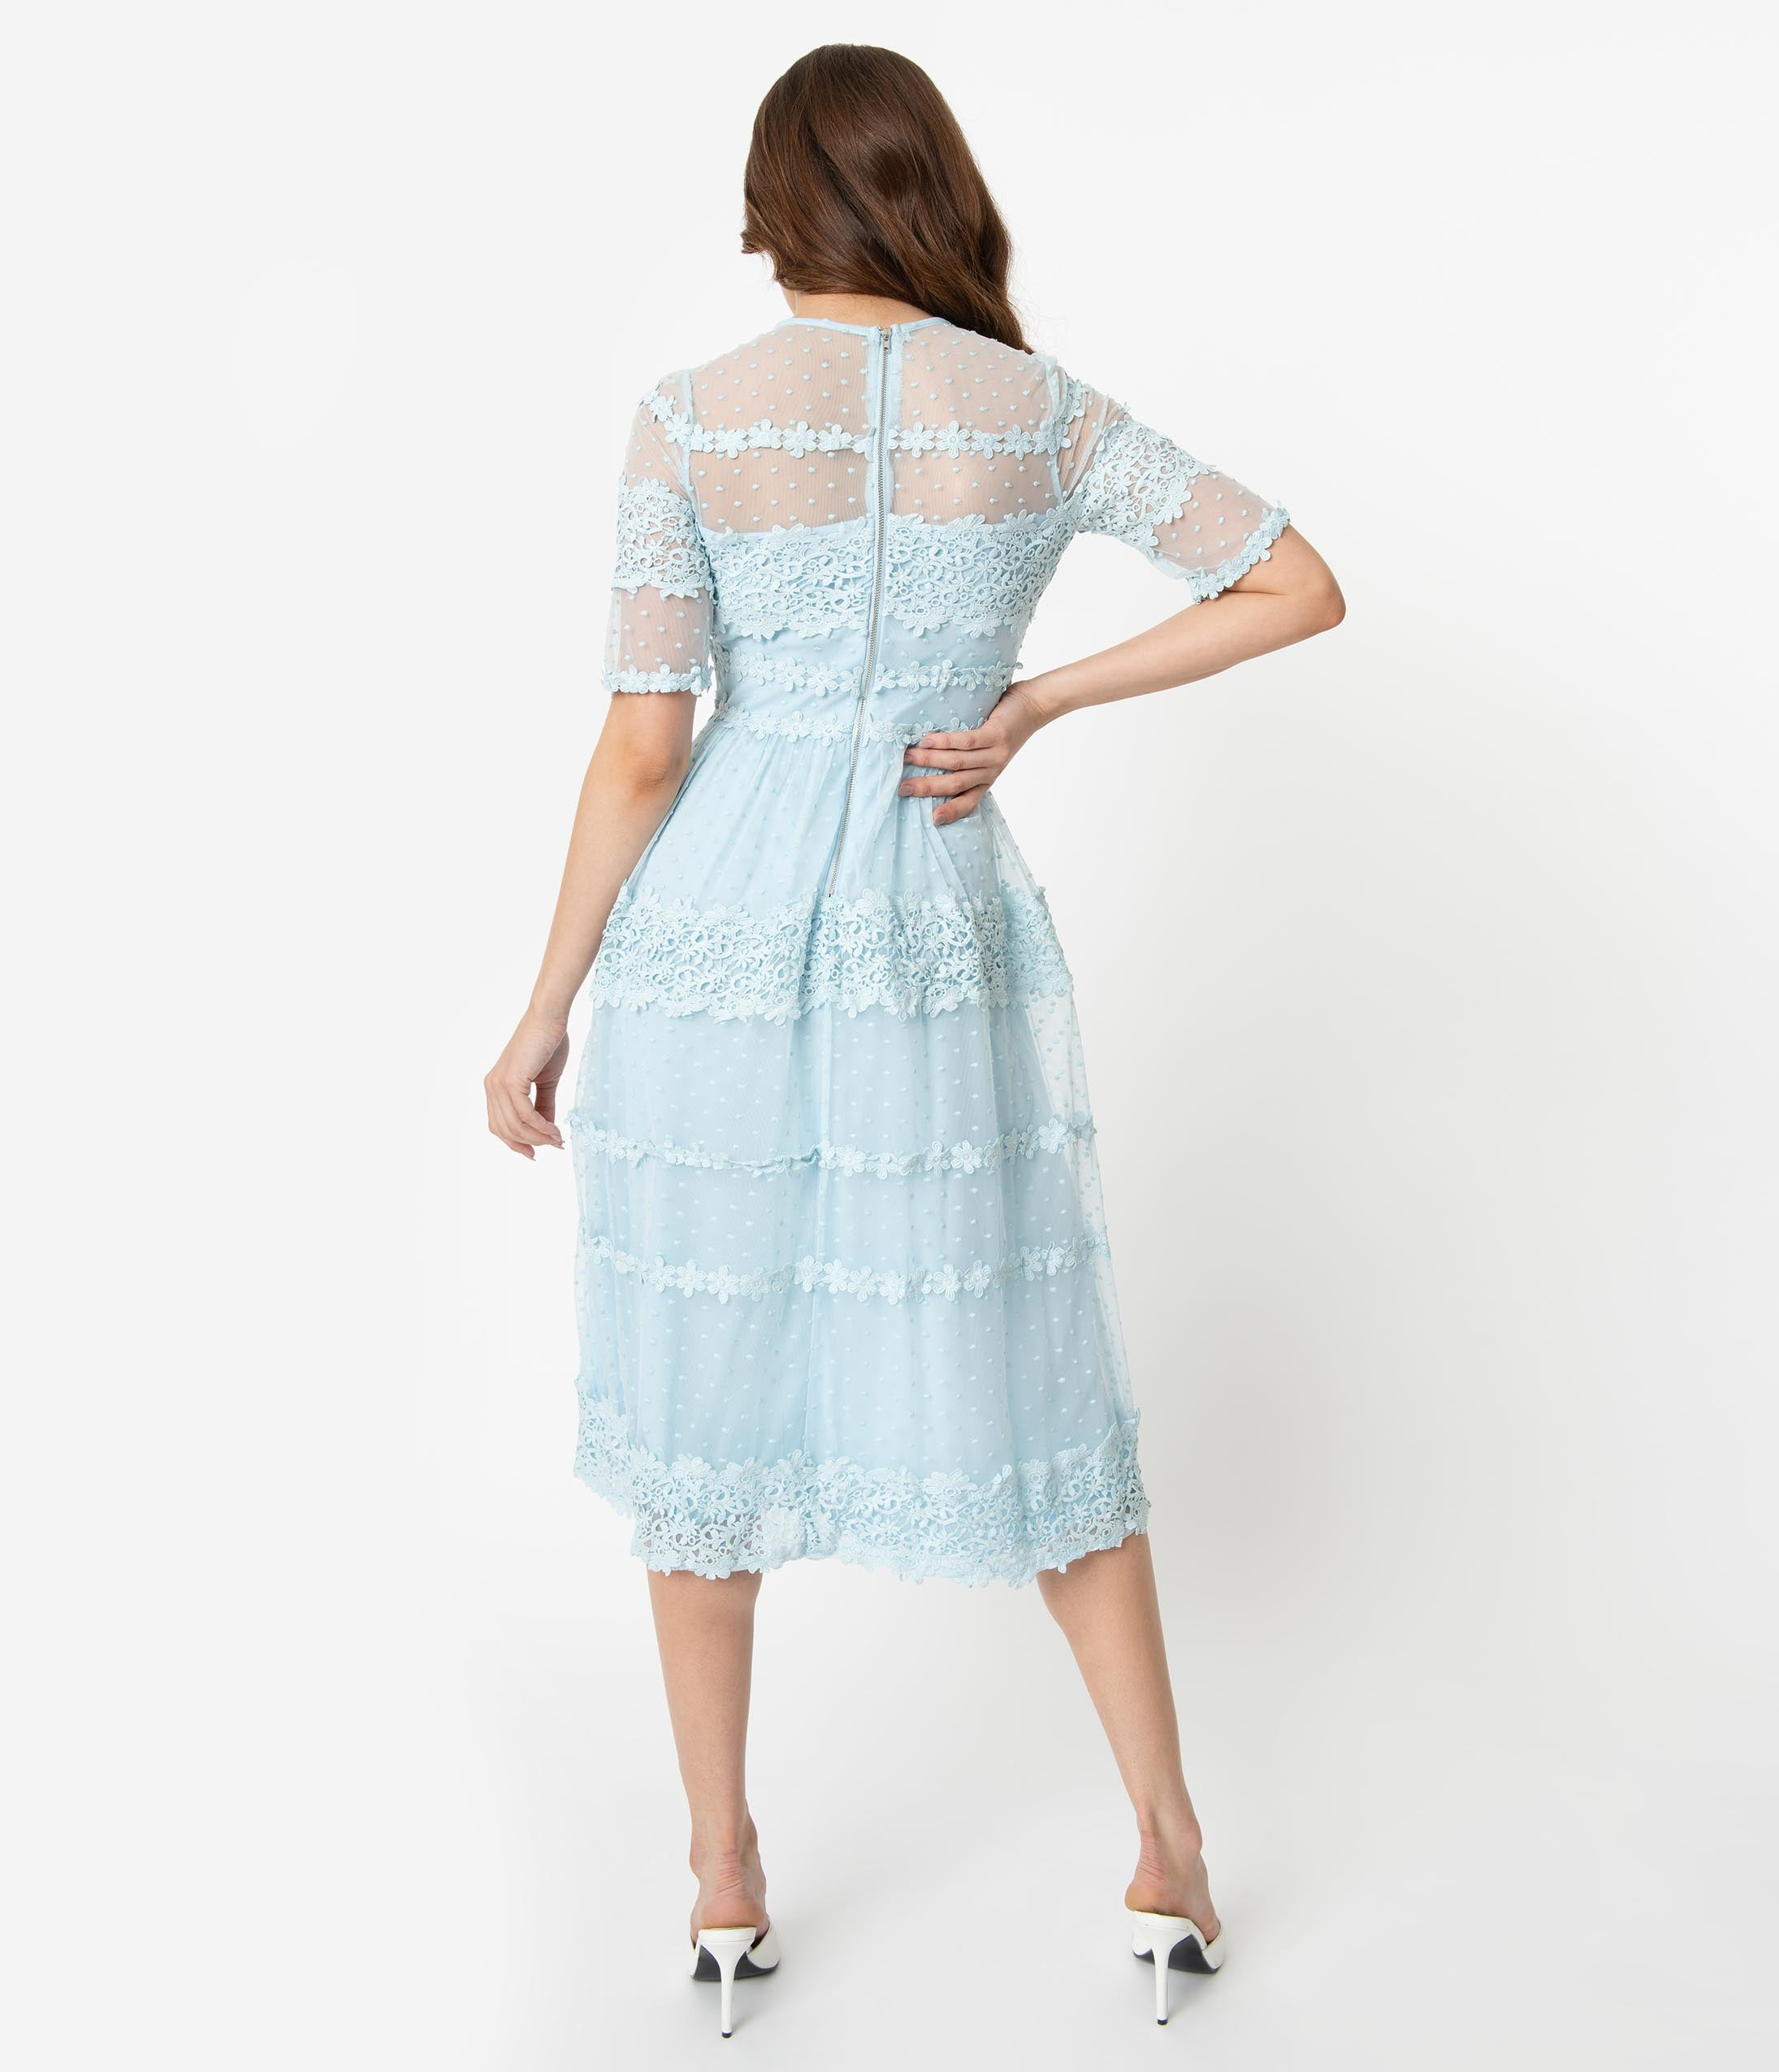 7bc5905591dbb Vintage Style Light Blue Swiss Dot & Lace Illusion Neckline Midi Dress.  $68.00. Ivory Lace & Beige Illusion Neckline Long Sleeved Fitted ...